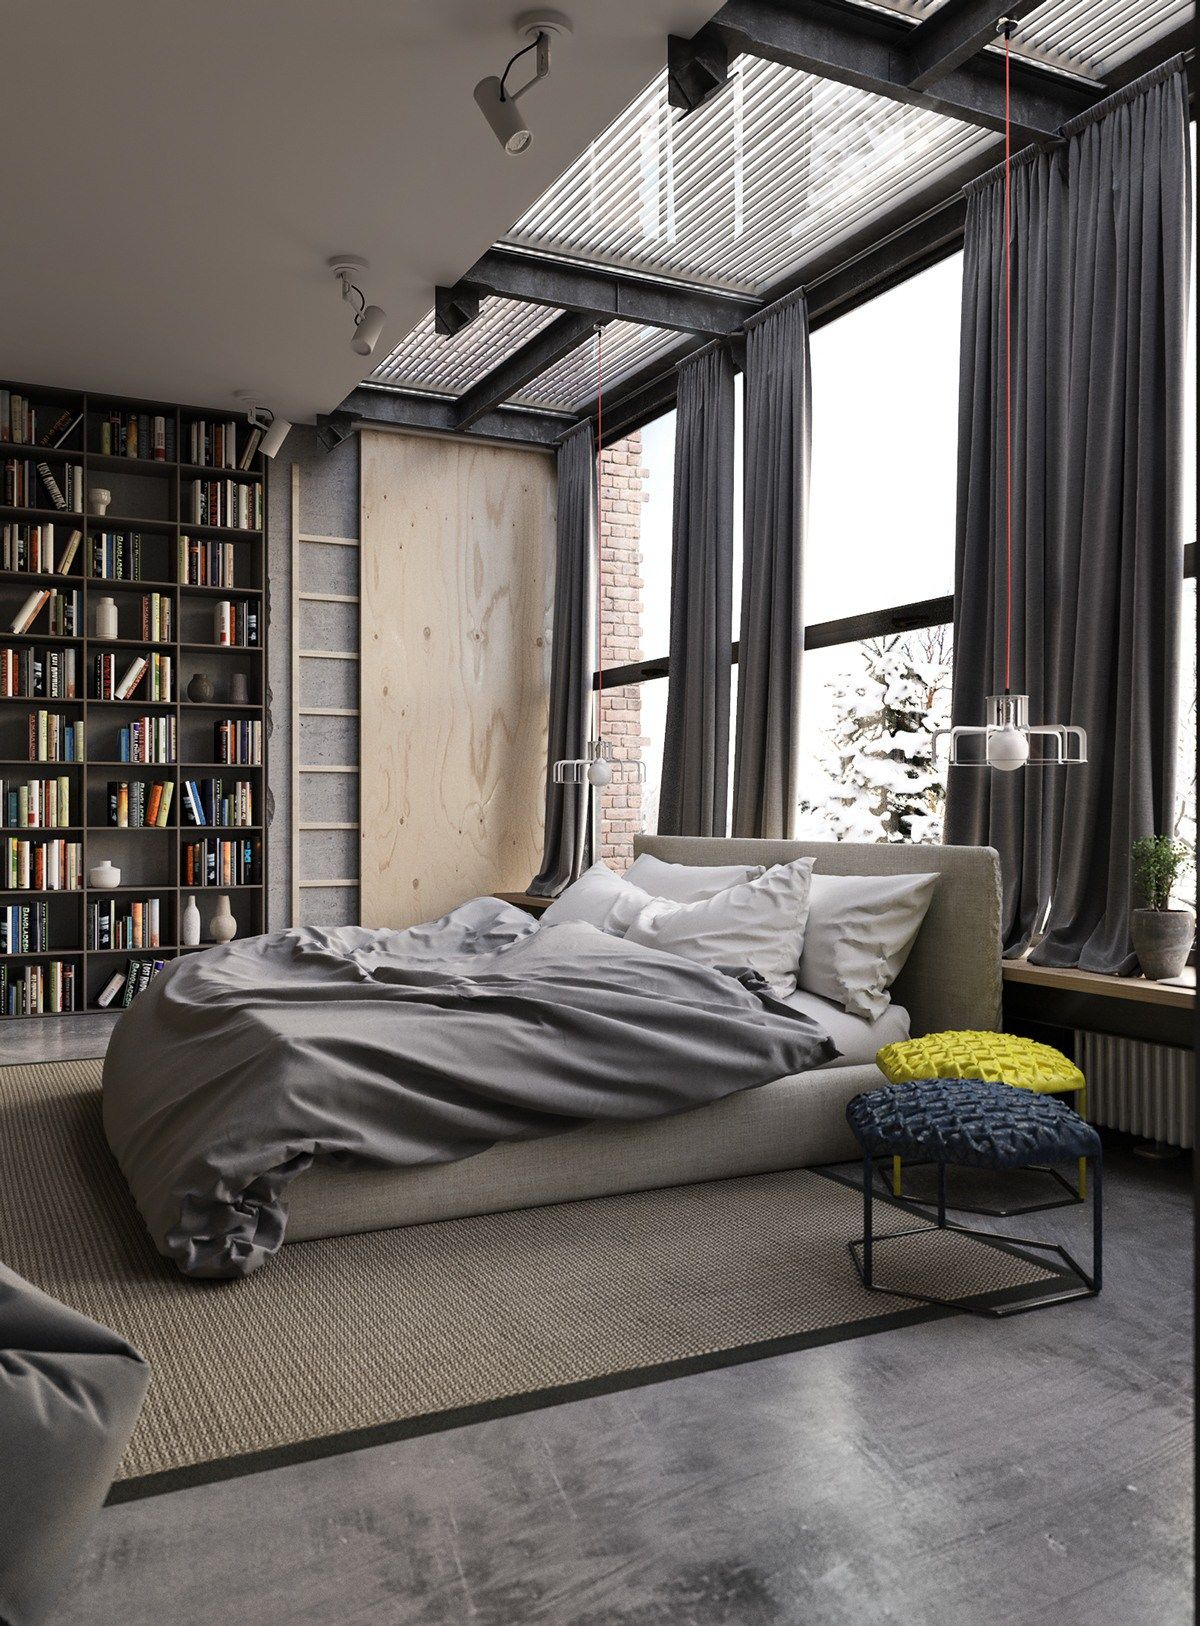 Gray Industrial Bedroom Decor Interior Design Ideas Black White Gray intended for 14 Genius Initiatives of How to Upgrade Elegant Modern Bedrooms